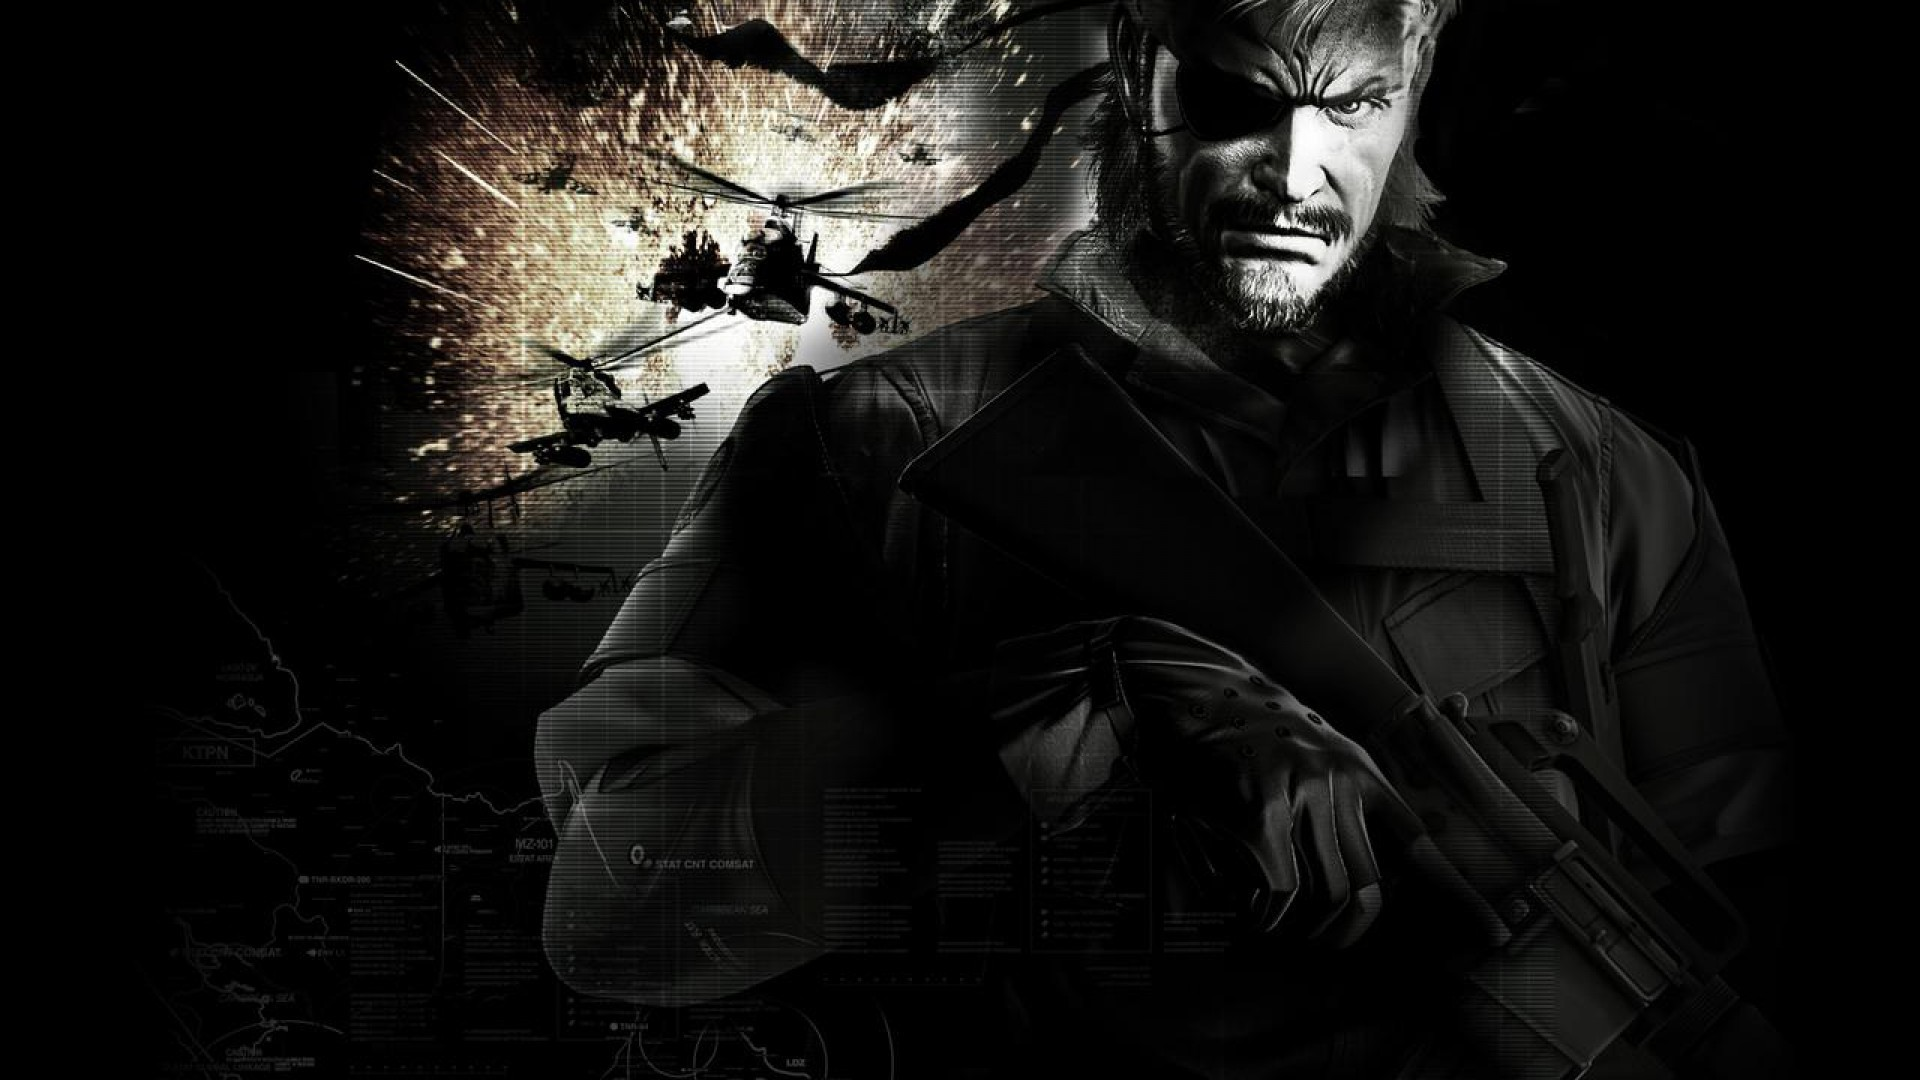 Metal Gear Solid Wallpaper Hd Posted By Ryan Anderson